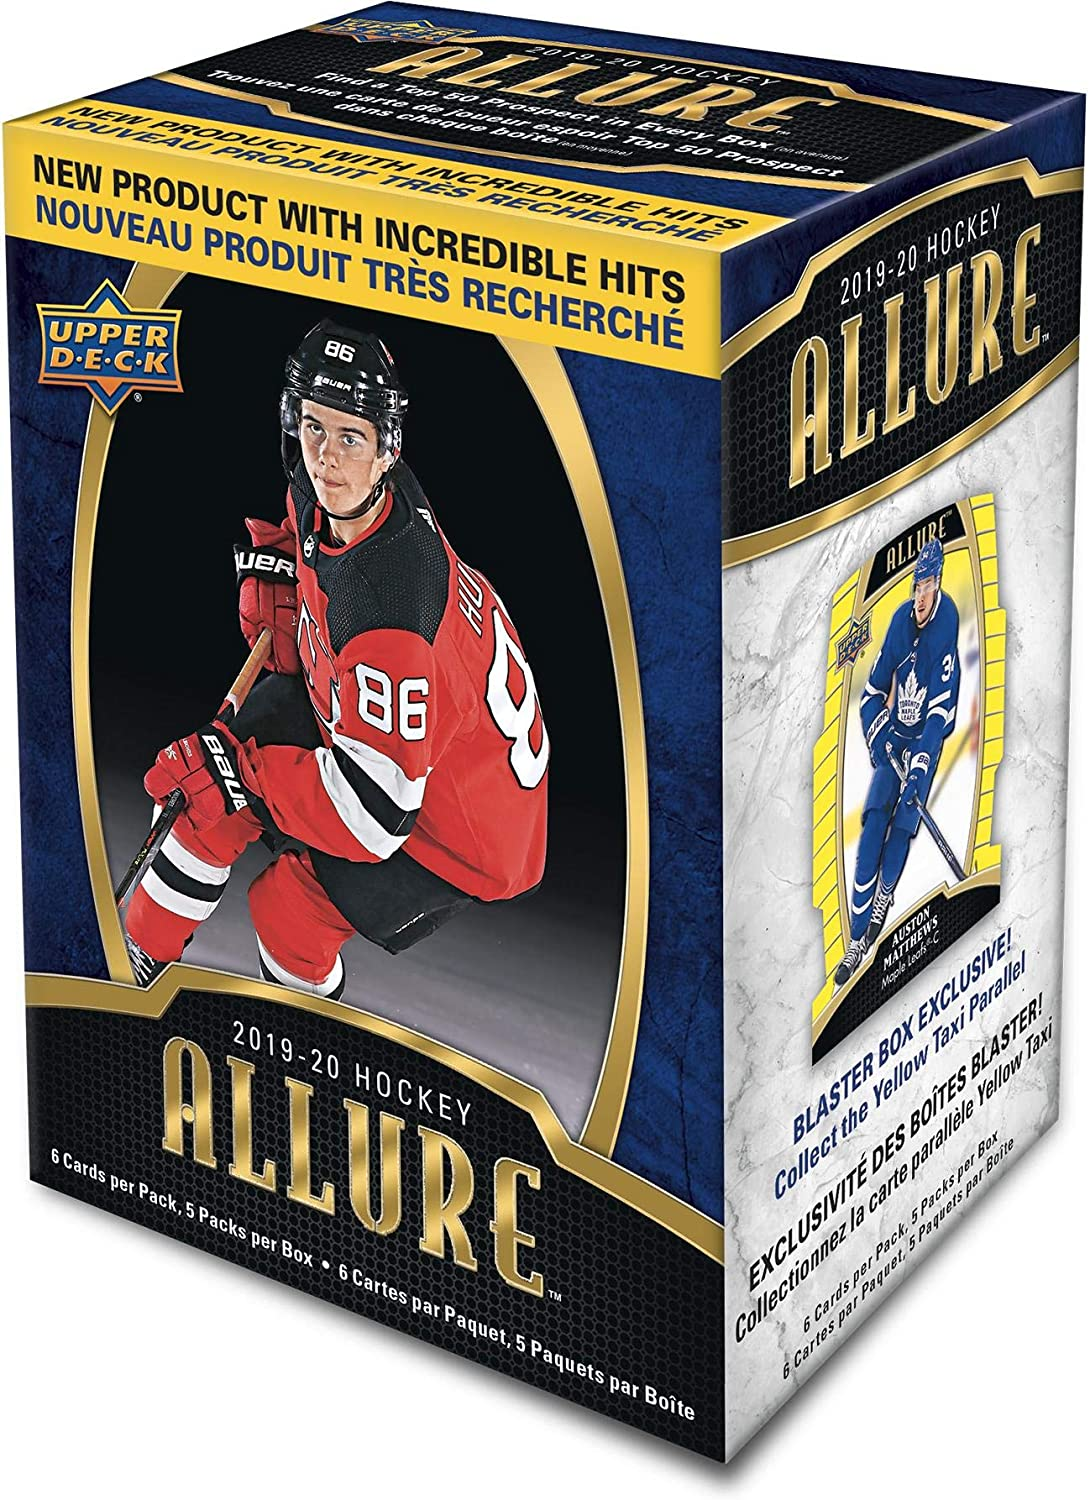 2019-20 Upper Deck Allure Hockey Factory Sealed 5 Pack Blaster Box - Hockey Wax Packs